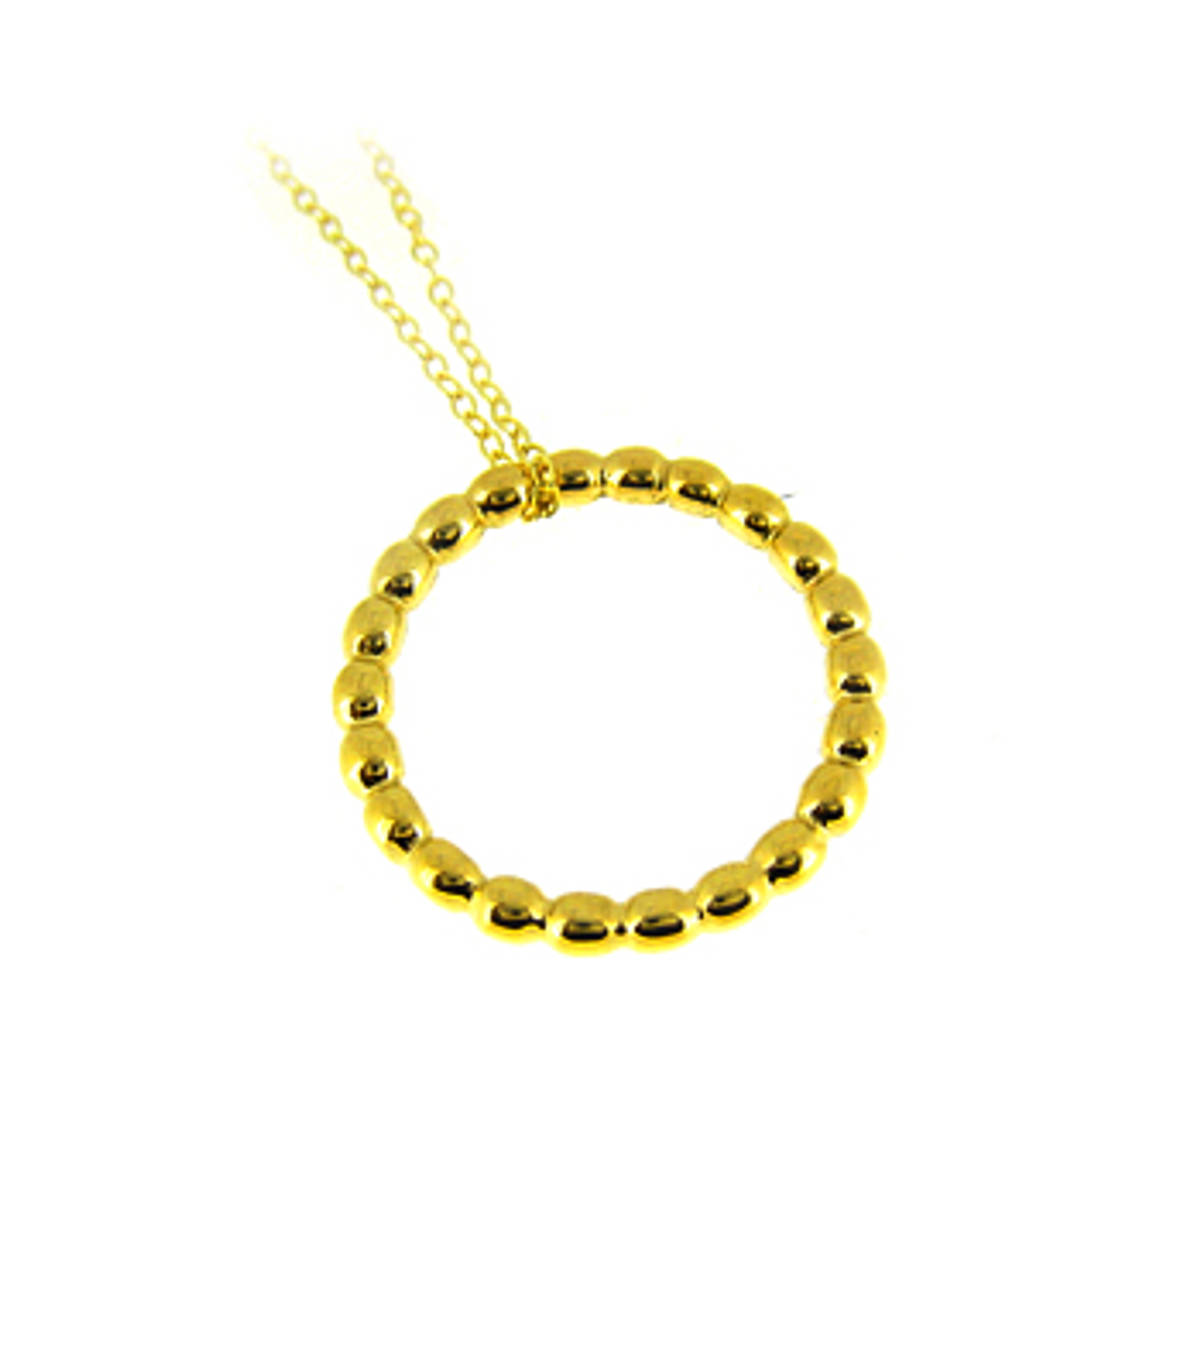 """9k yellow gold rope pattern circle pendant on 9k yellow gold 18"""" chain Metal: 9k yellow gold  9k yellow gold 18"""" chain Length  2cm Width 2cm      Made in Ireland"""